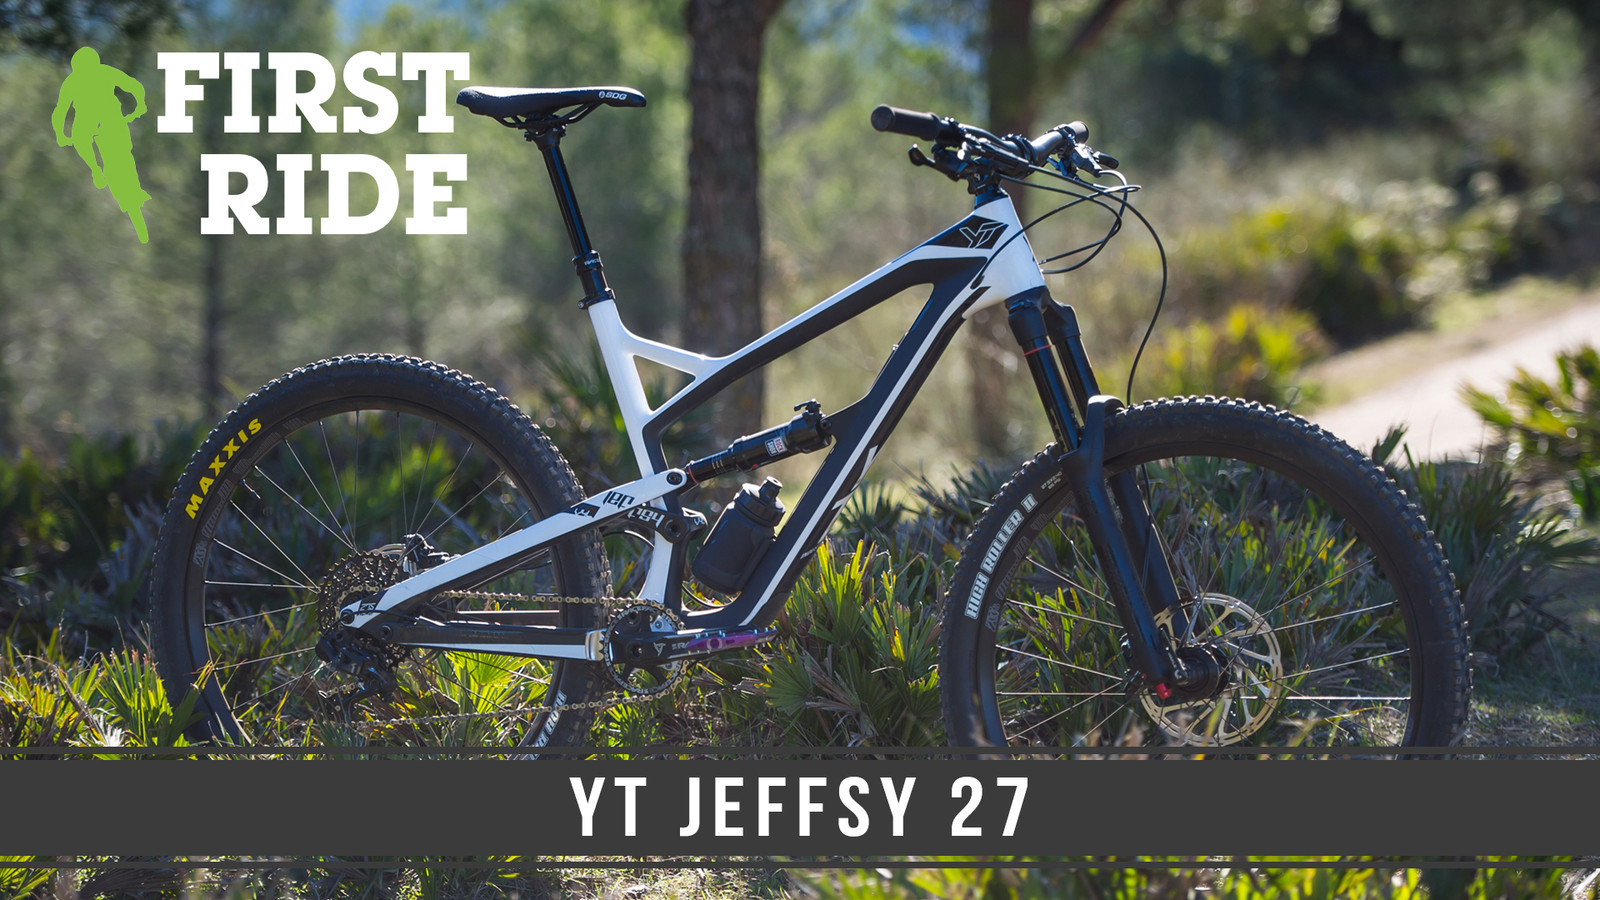 First Ride: YT JEFFSY 27